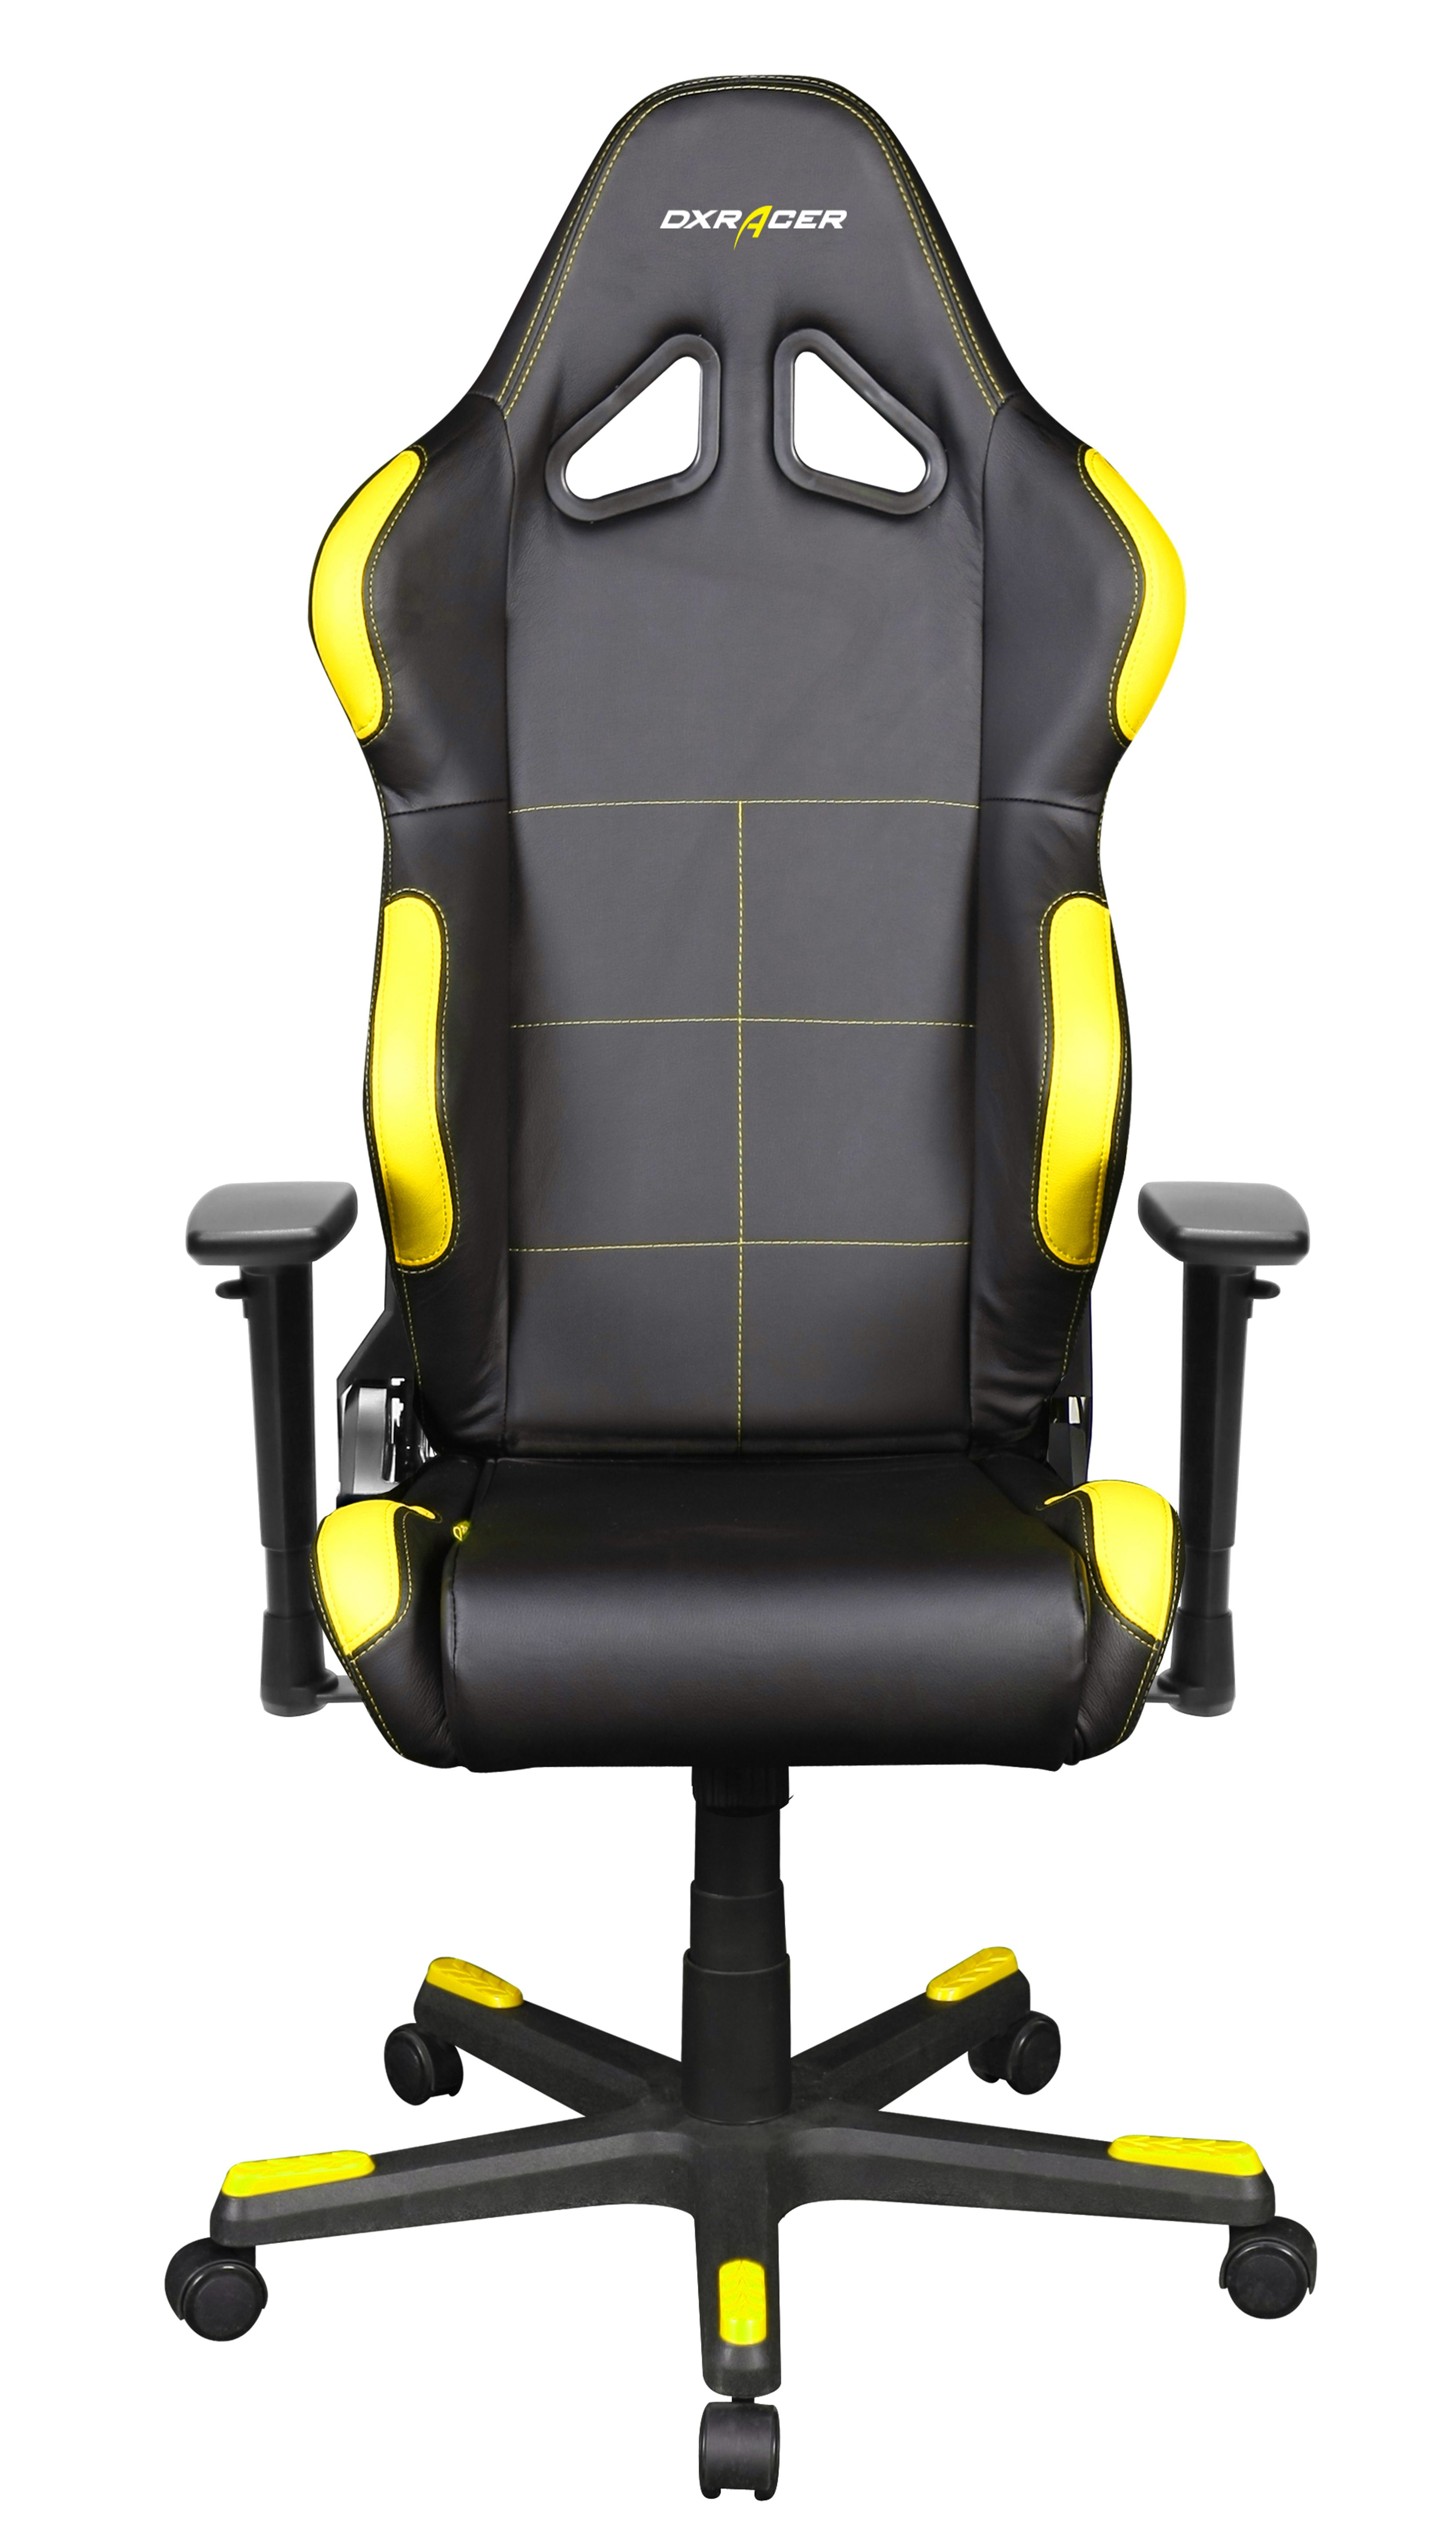 Black gamer chair DXracer Game chair